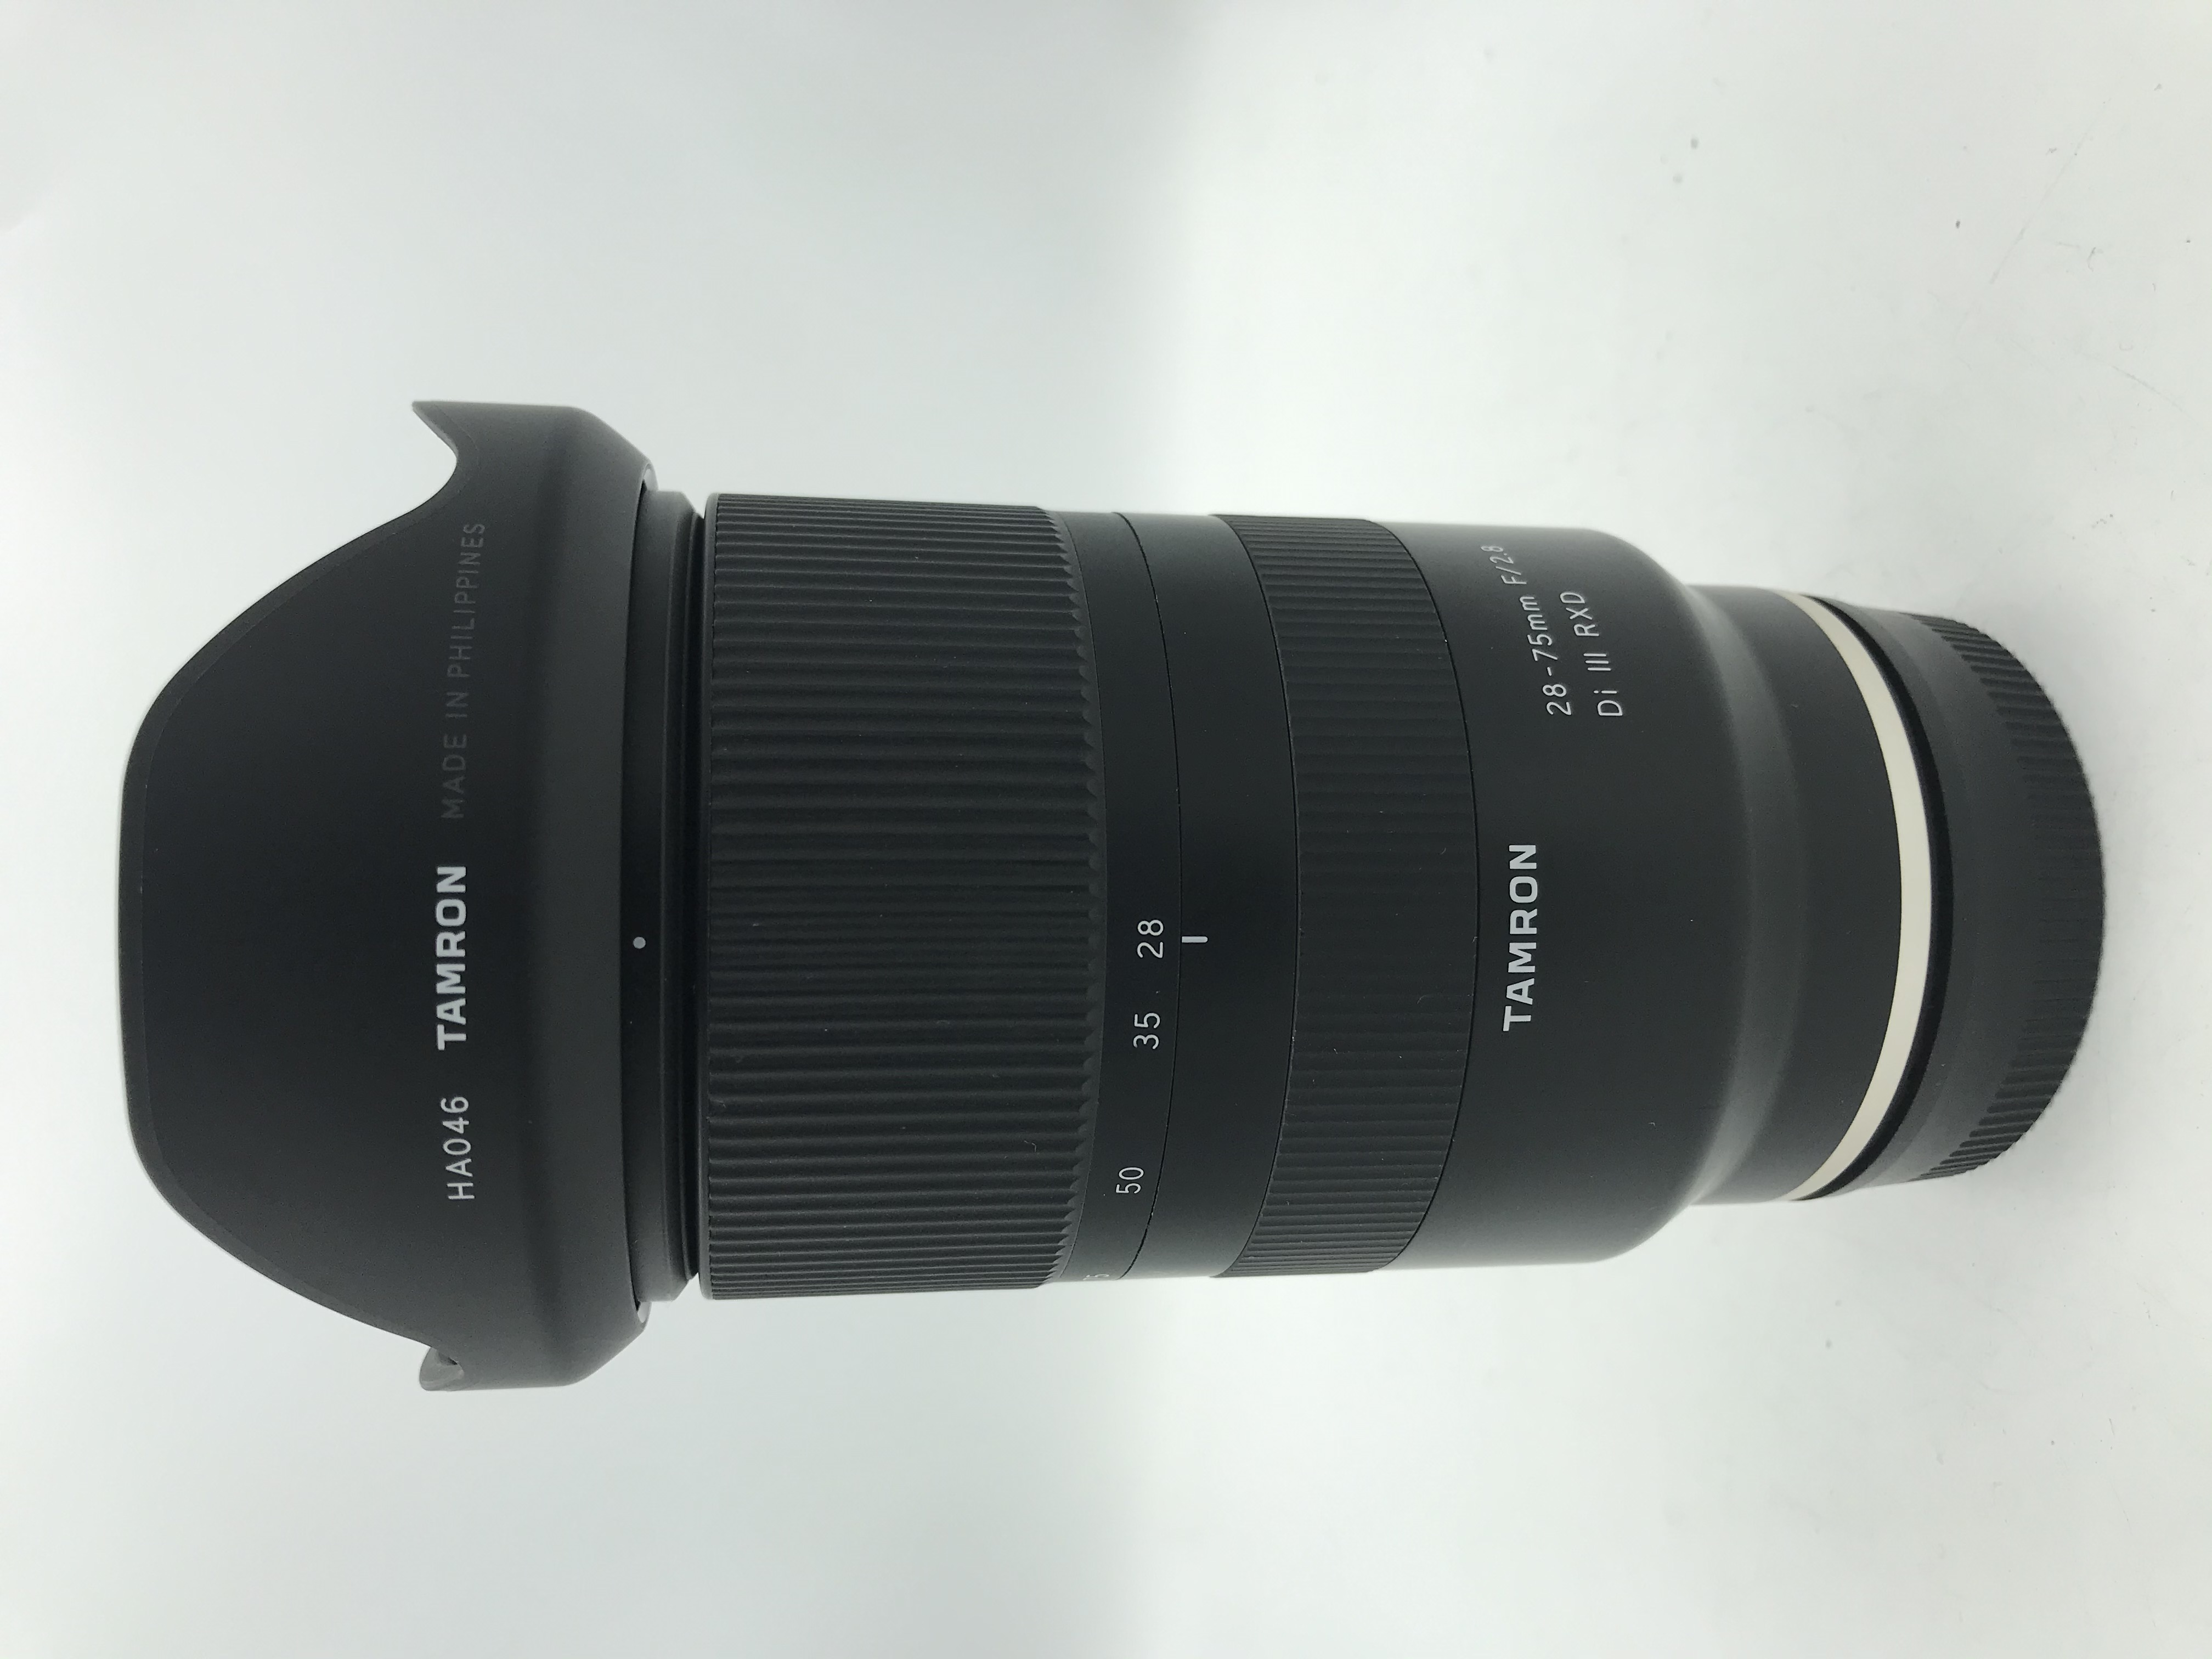 Used Tamron 28-75mm f/2.8 Di III RXD Lens for Sony E